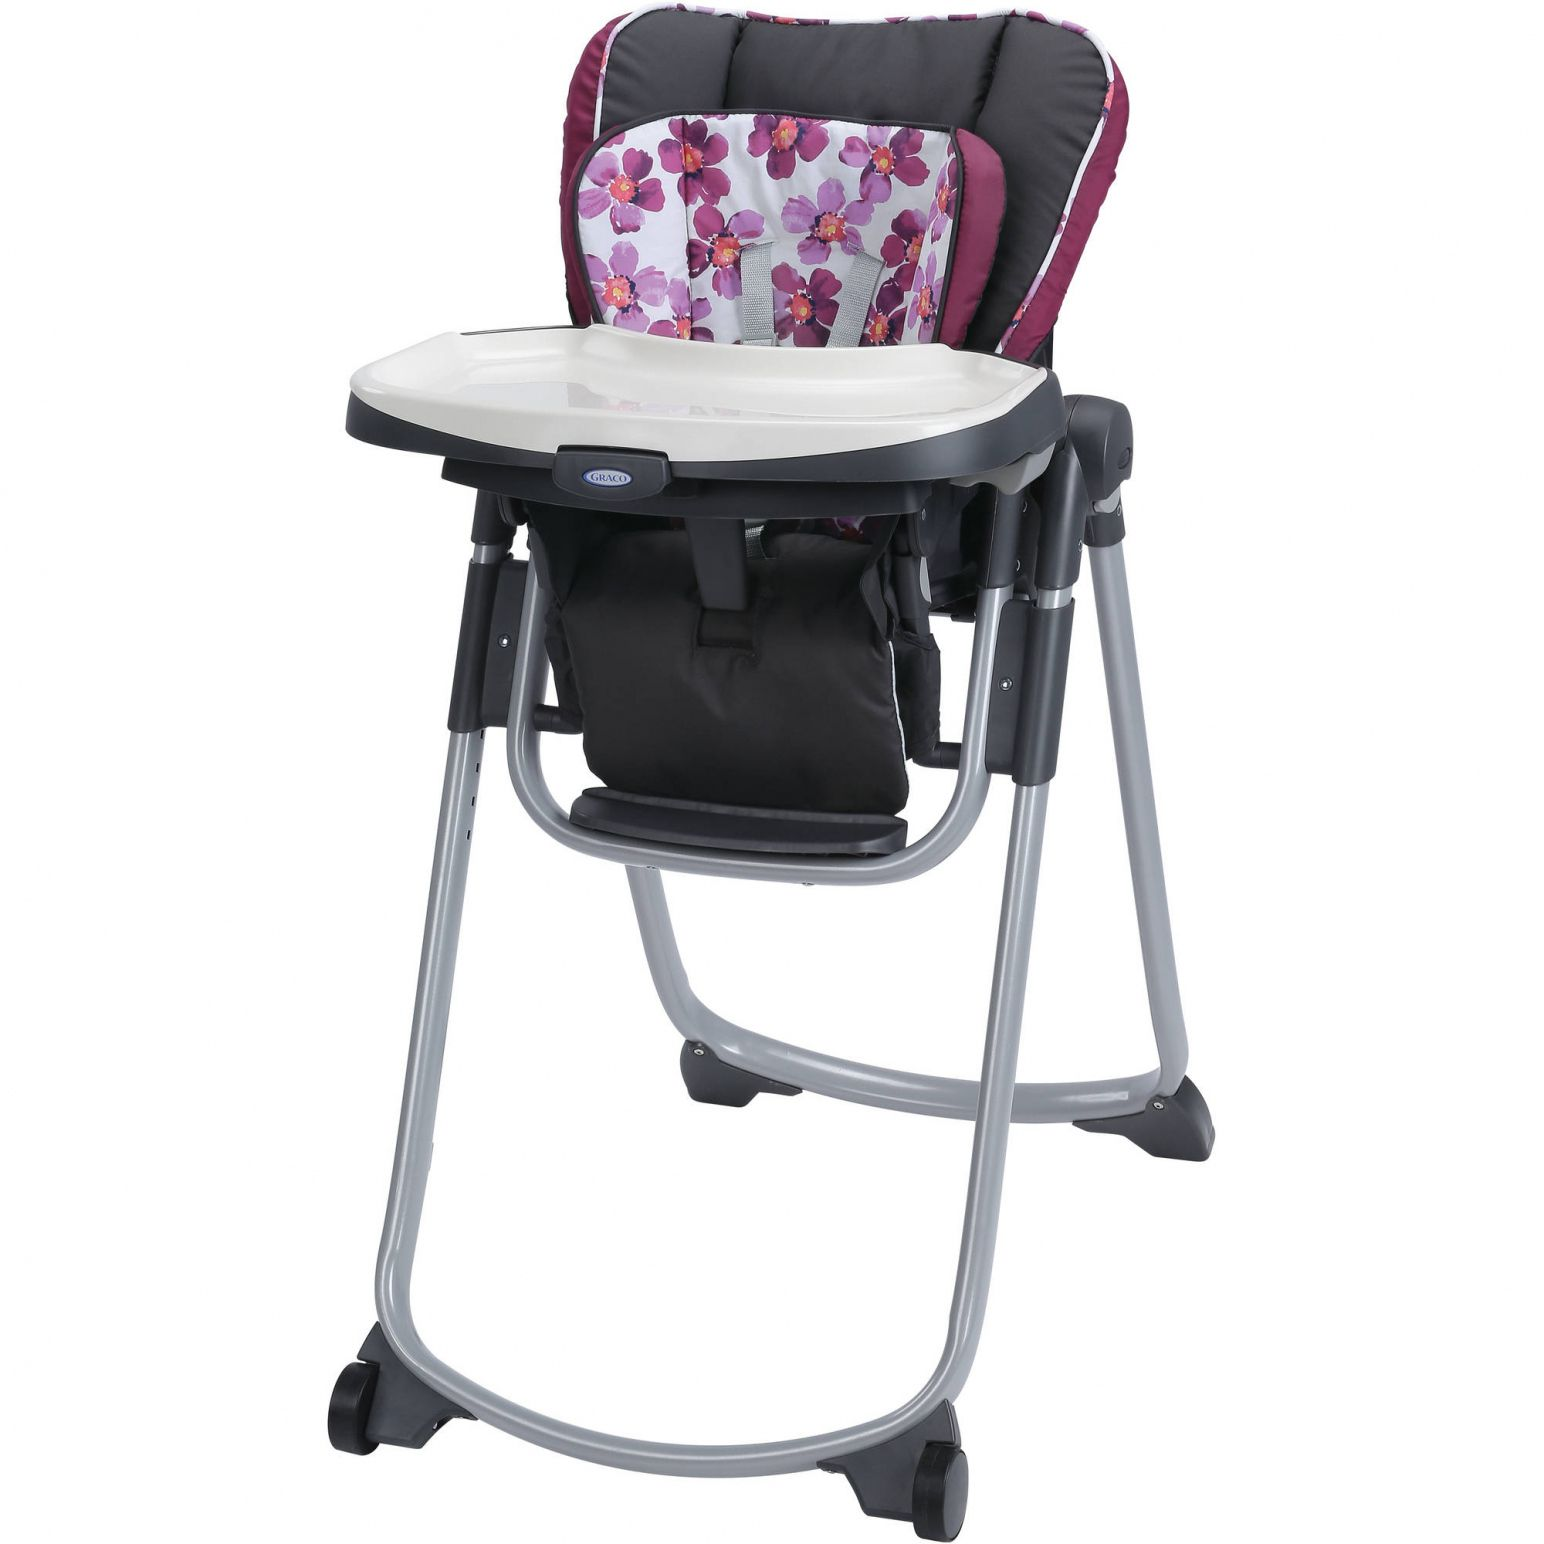 100 Baby High Chairs At Walmart Kitchen Pantry Storage Ideas Check More At Http Cacophonouscreations Com Baby High Chairs At Walmart